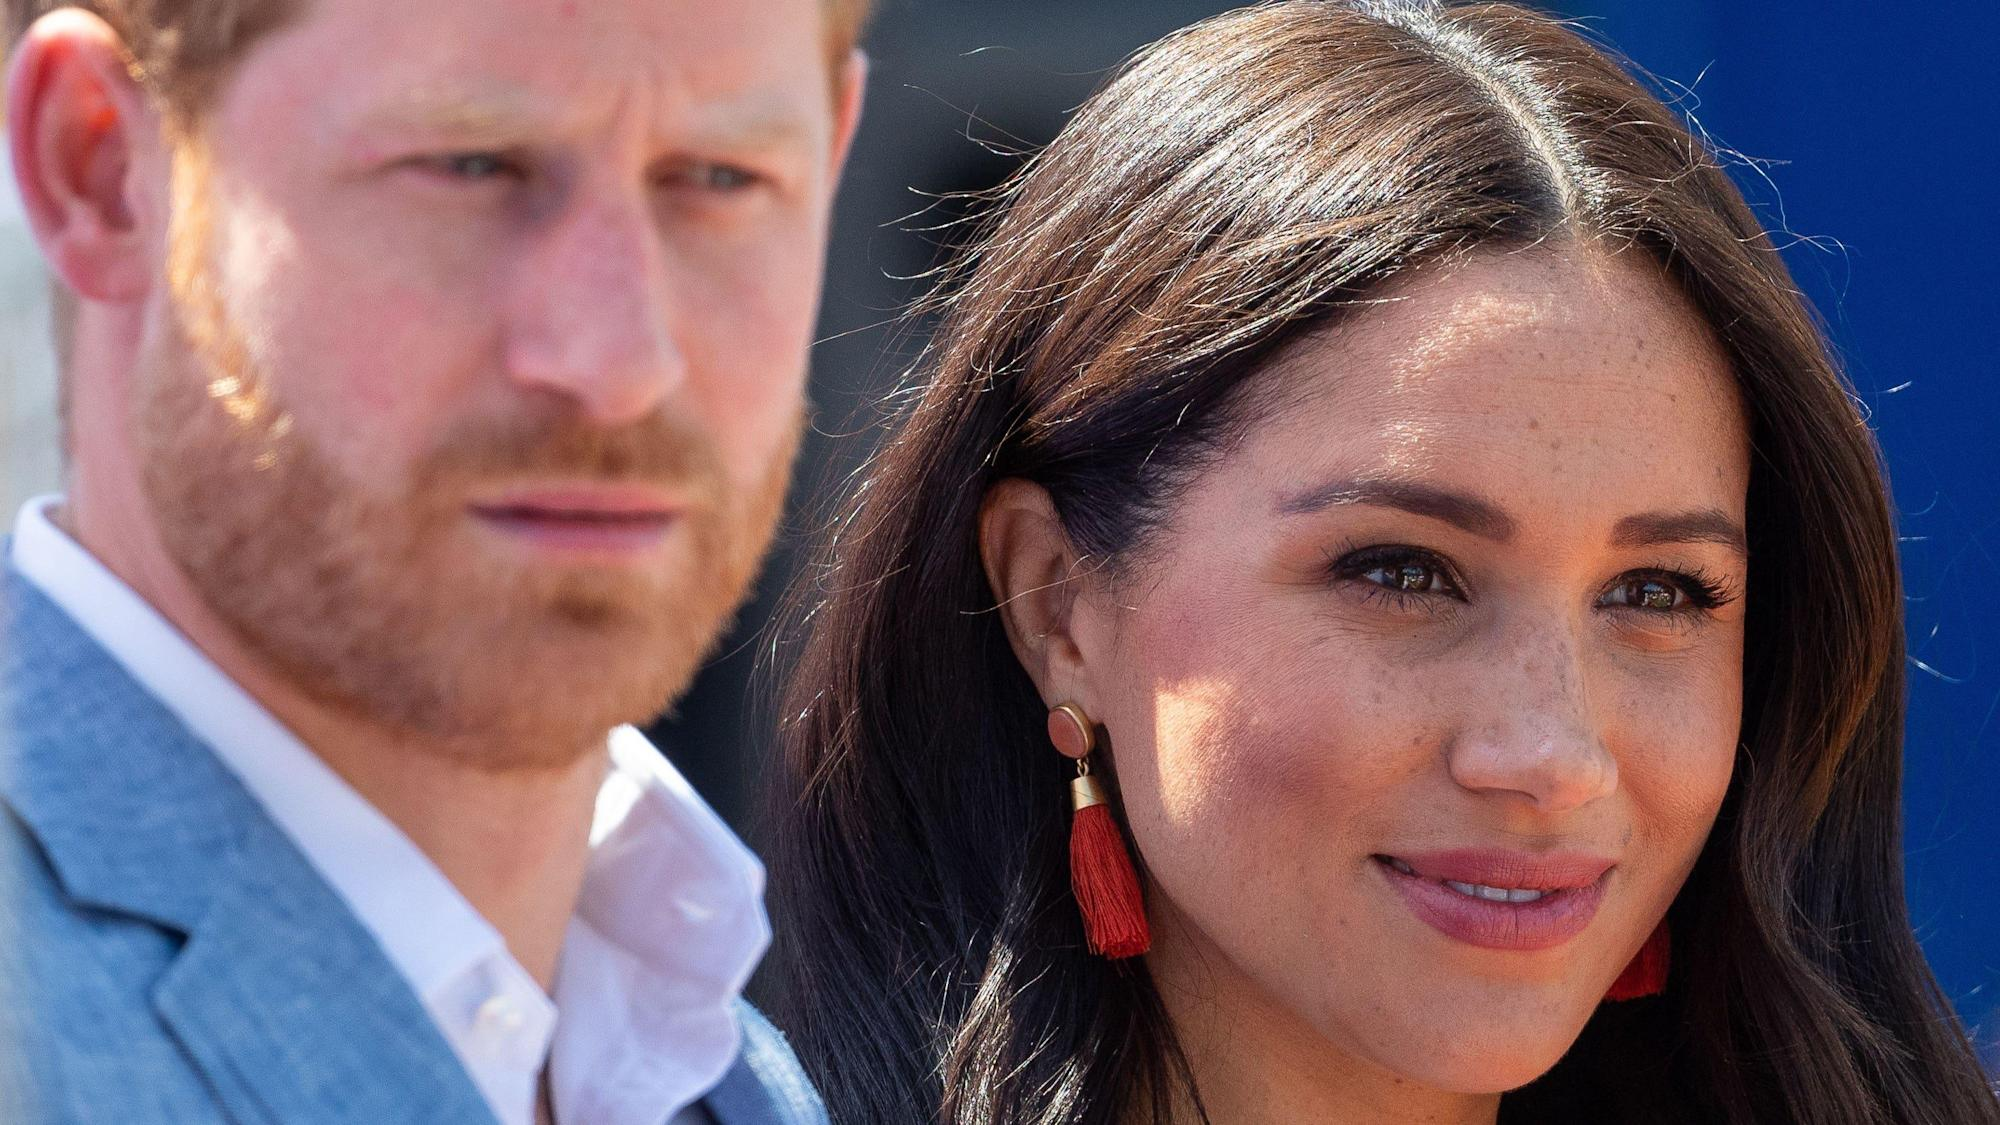 Meghan and Harry on Oprah: The questions that need answering